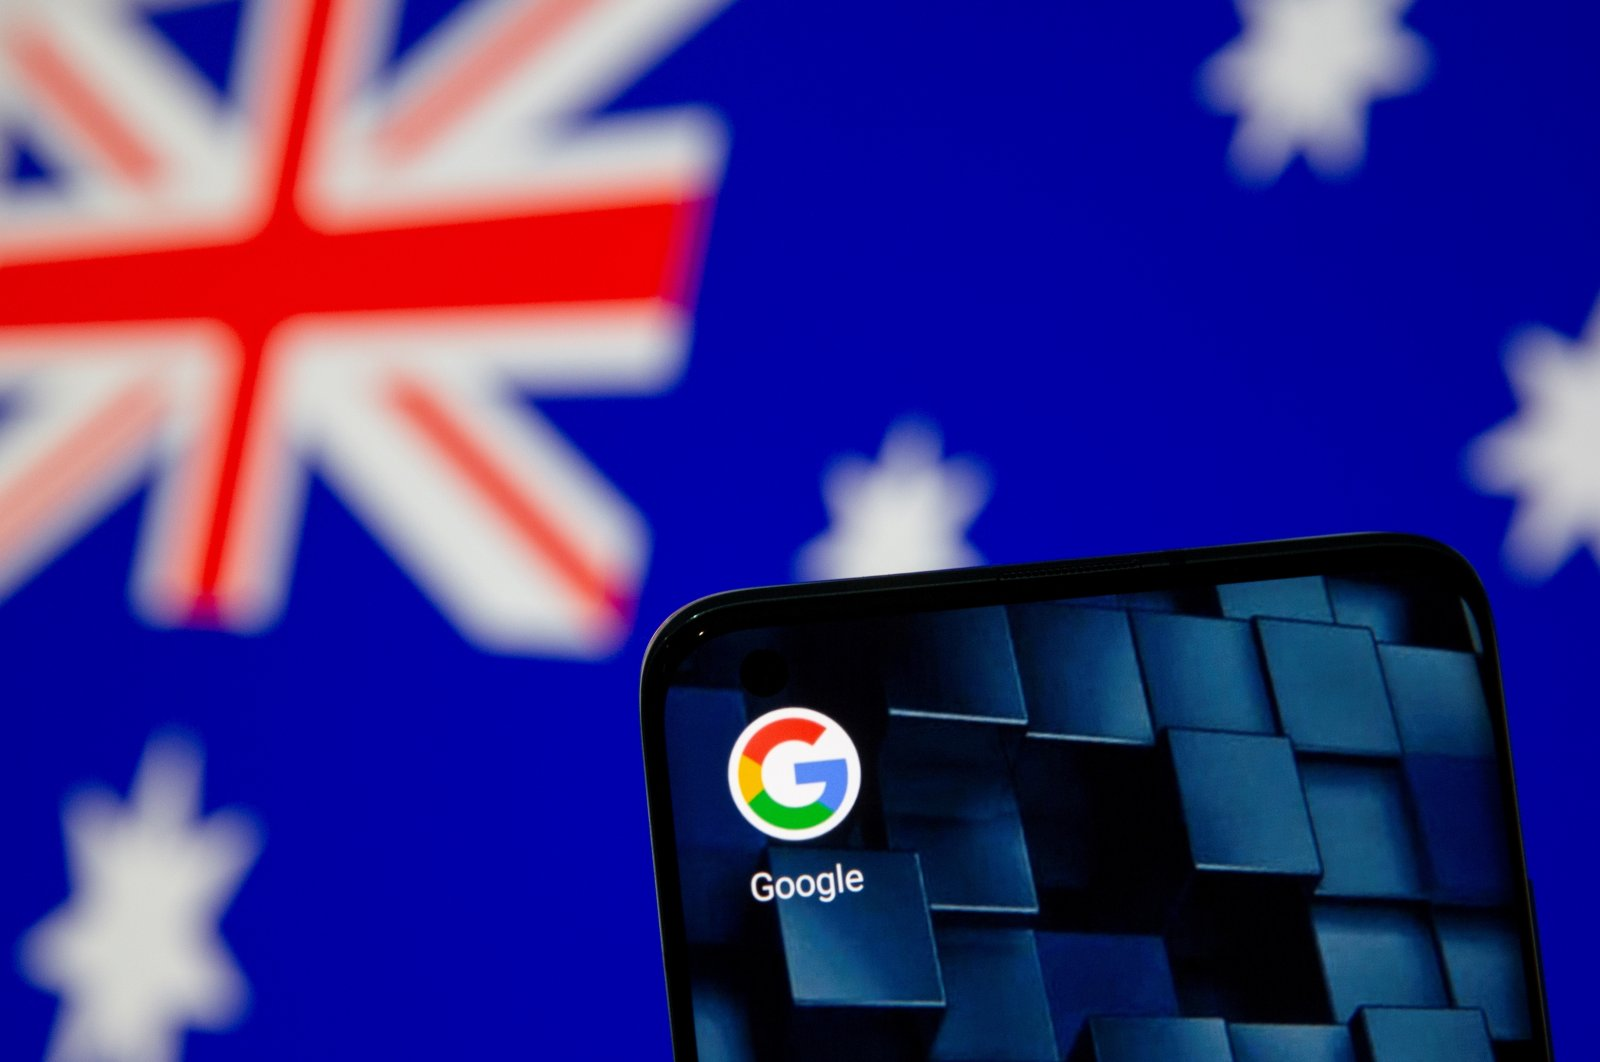 Smartphone with Google app icon is seen in front of the Australian flag in this illustration taken Jan. 22, 2021. (Reuters Photo)